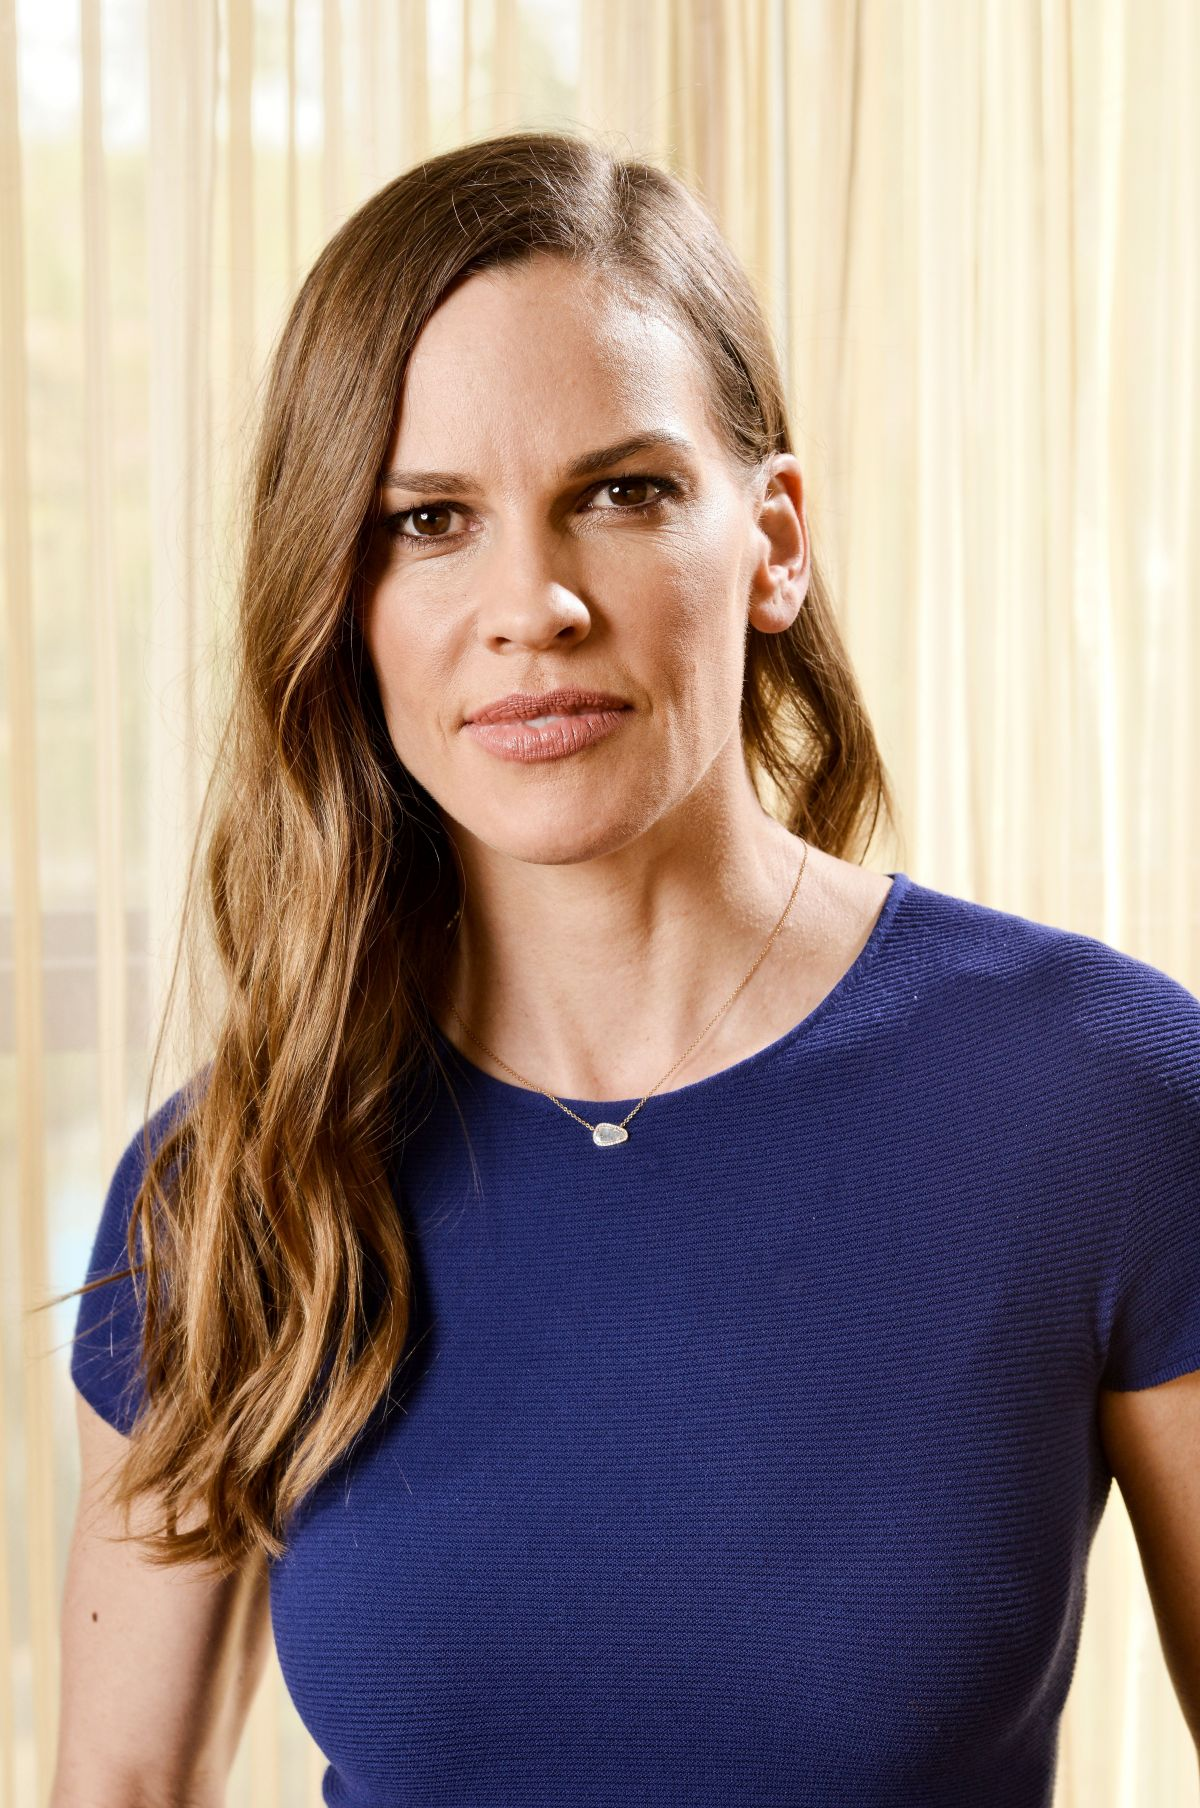 Hilary Ann Swank naked (64 photos), Ass, Cleavage, Instagram, bra 2015